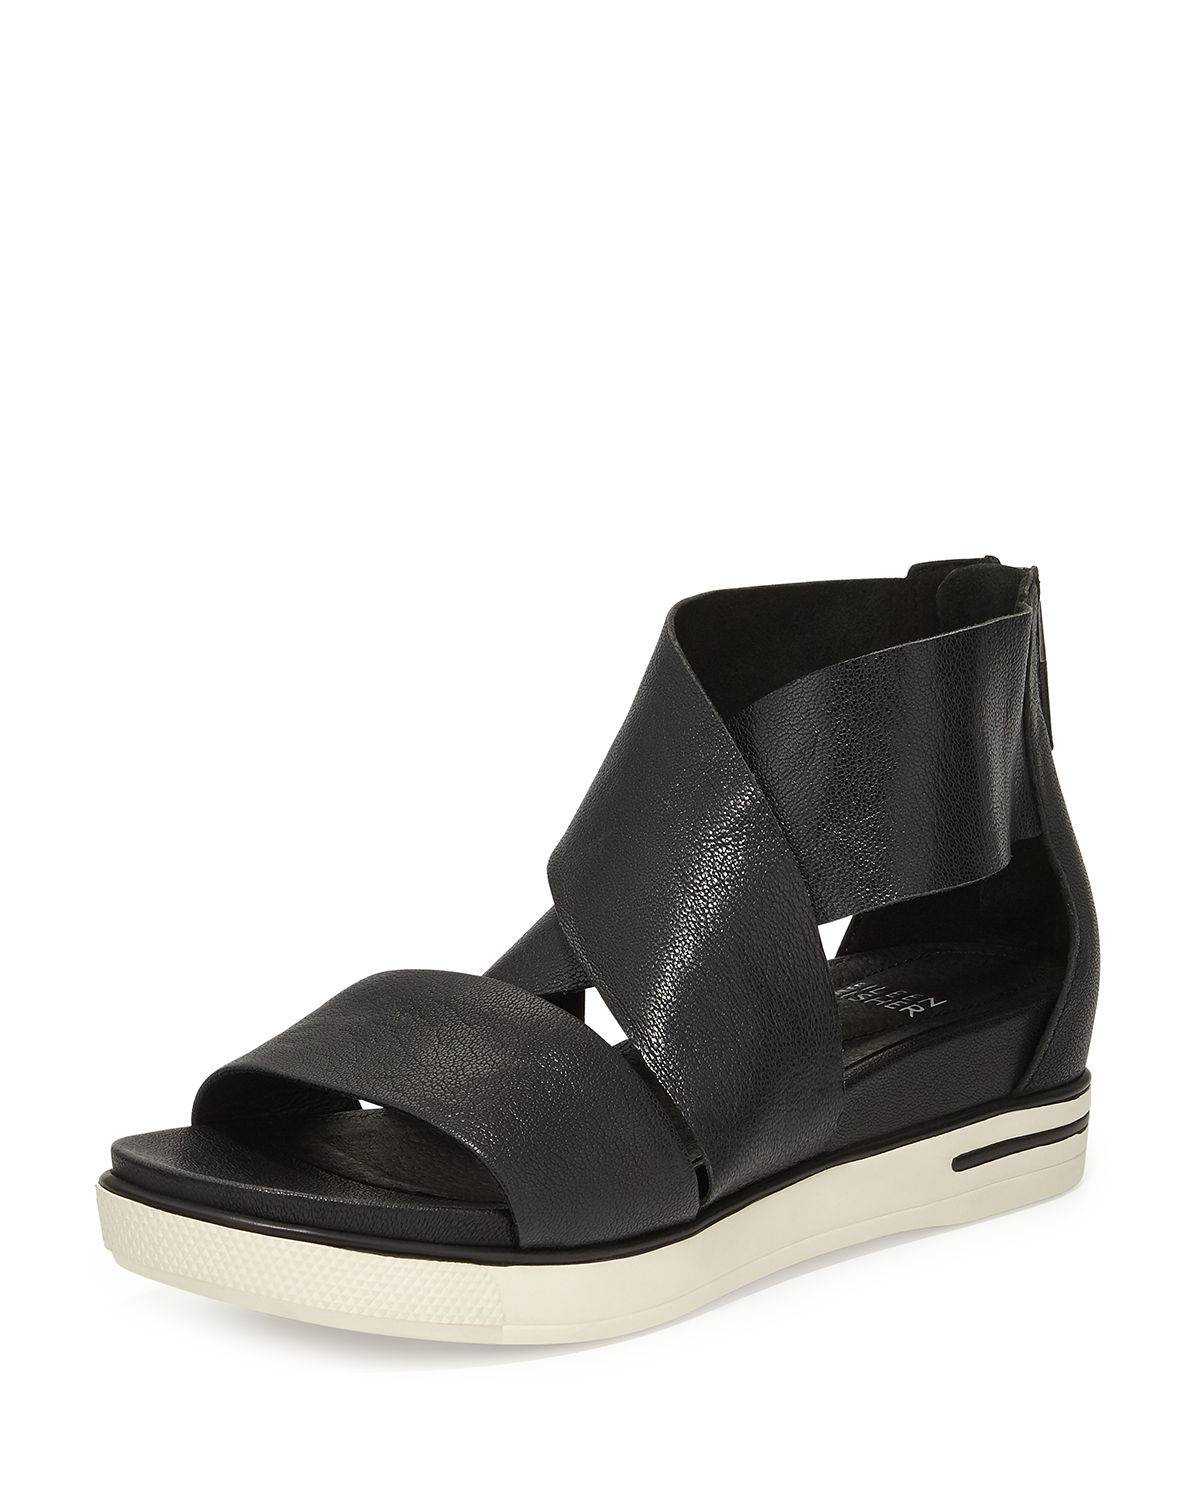 Eileen Fisher Sport Wide-Strap Leather Sandal, Black - Size: 40 IT (10B US)